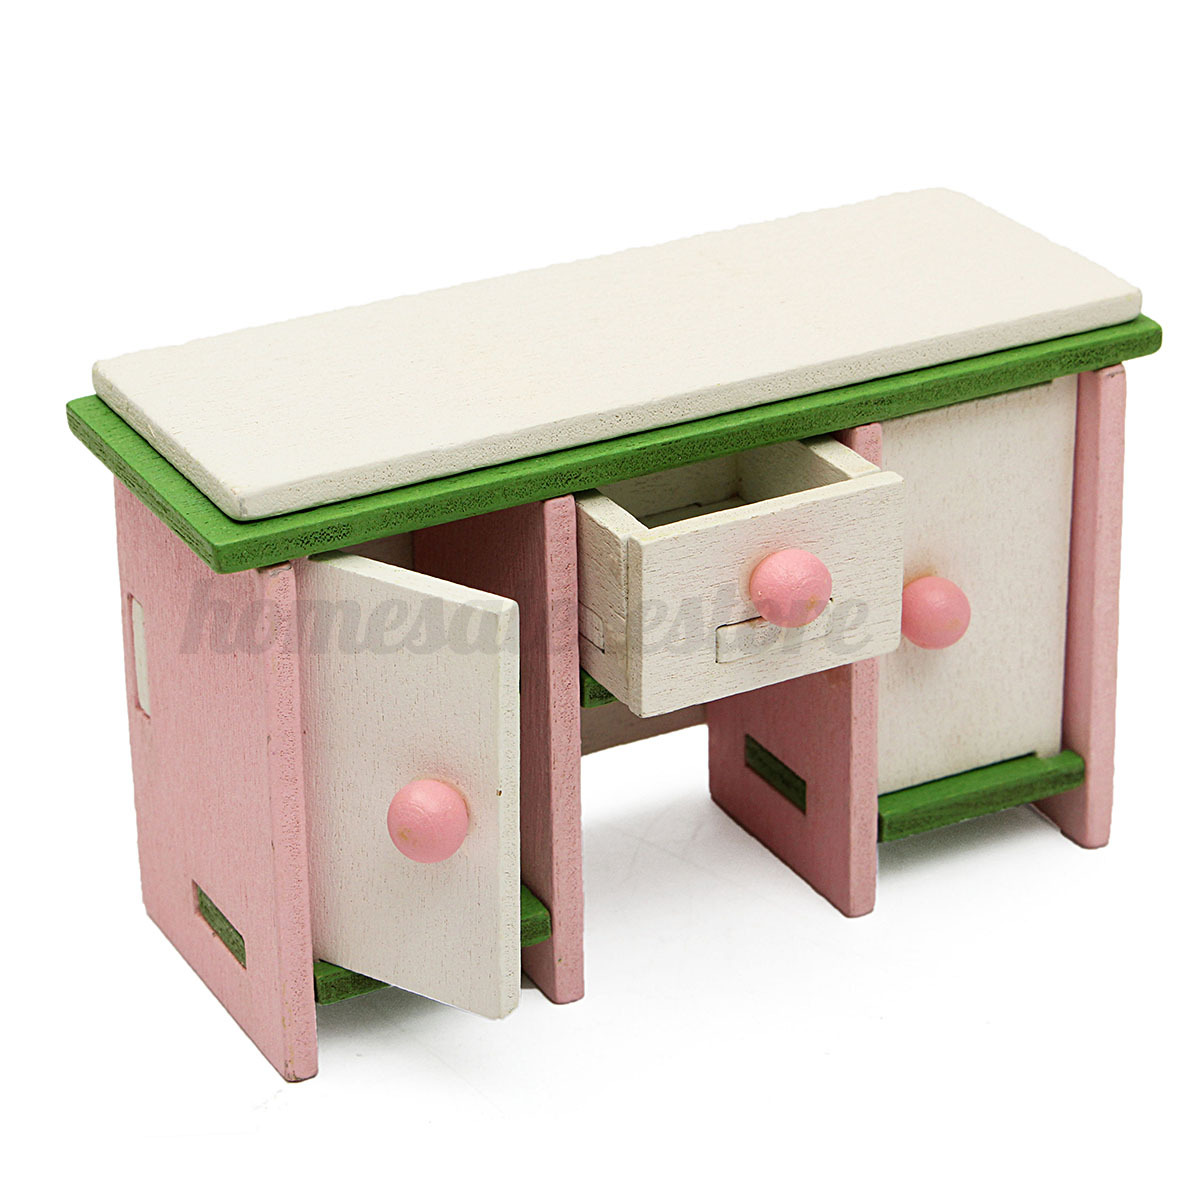 Doll House Miniature Bedroom Wooden Furniture Set Kids Role Pretend Play Toy Ebay